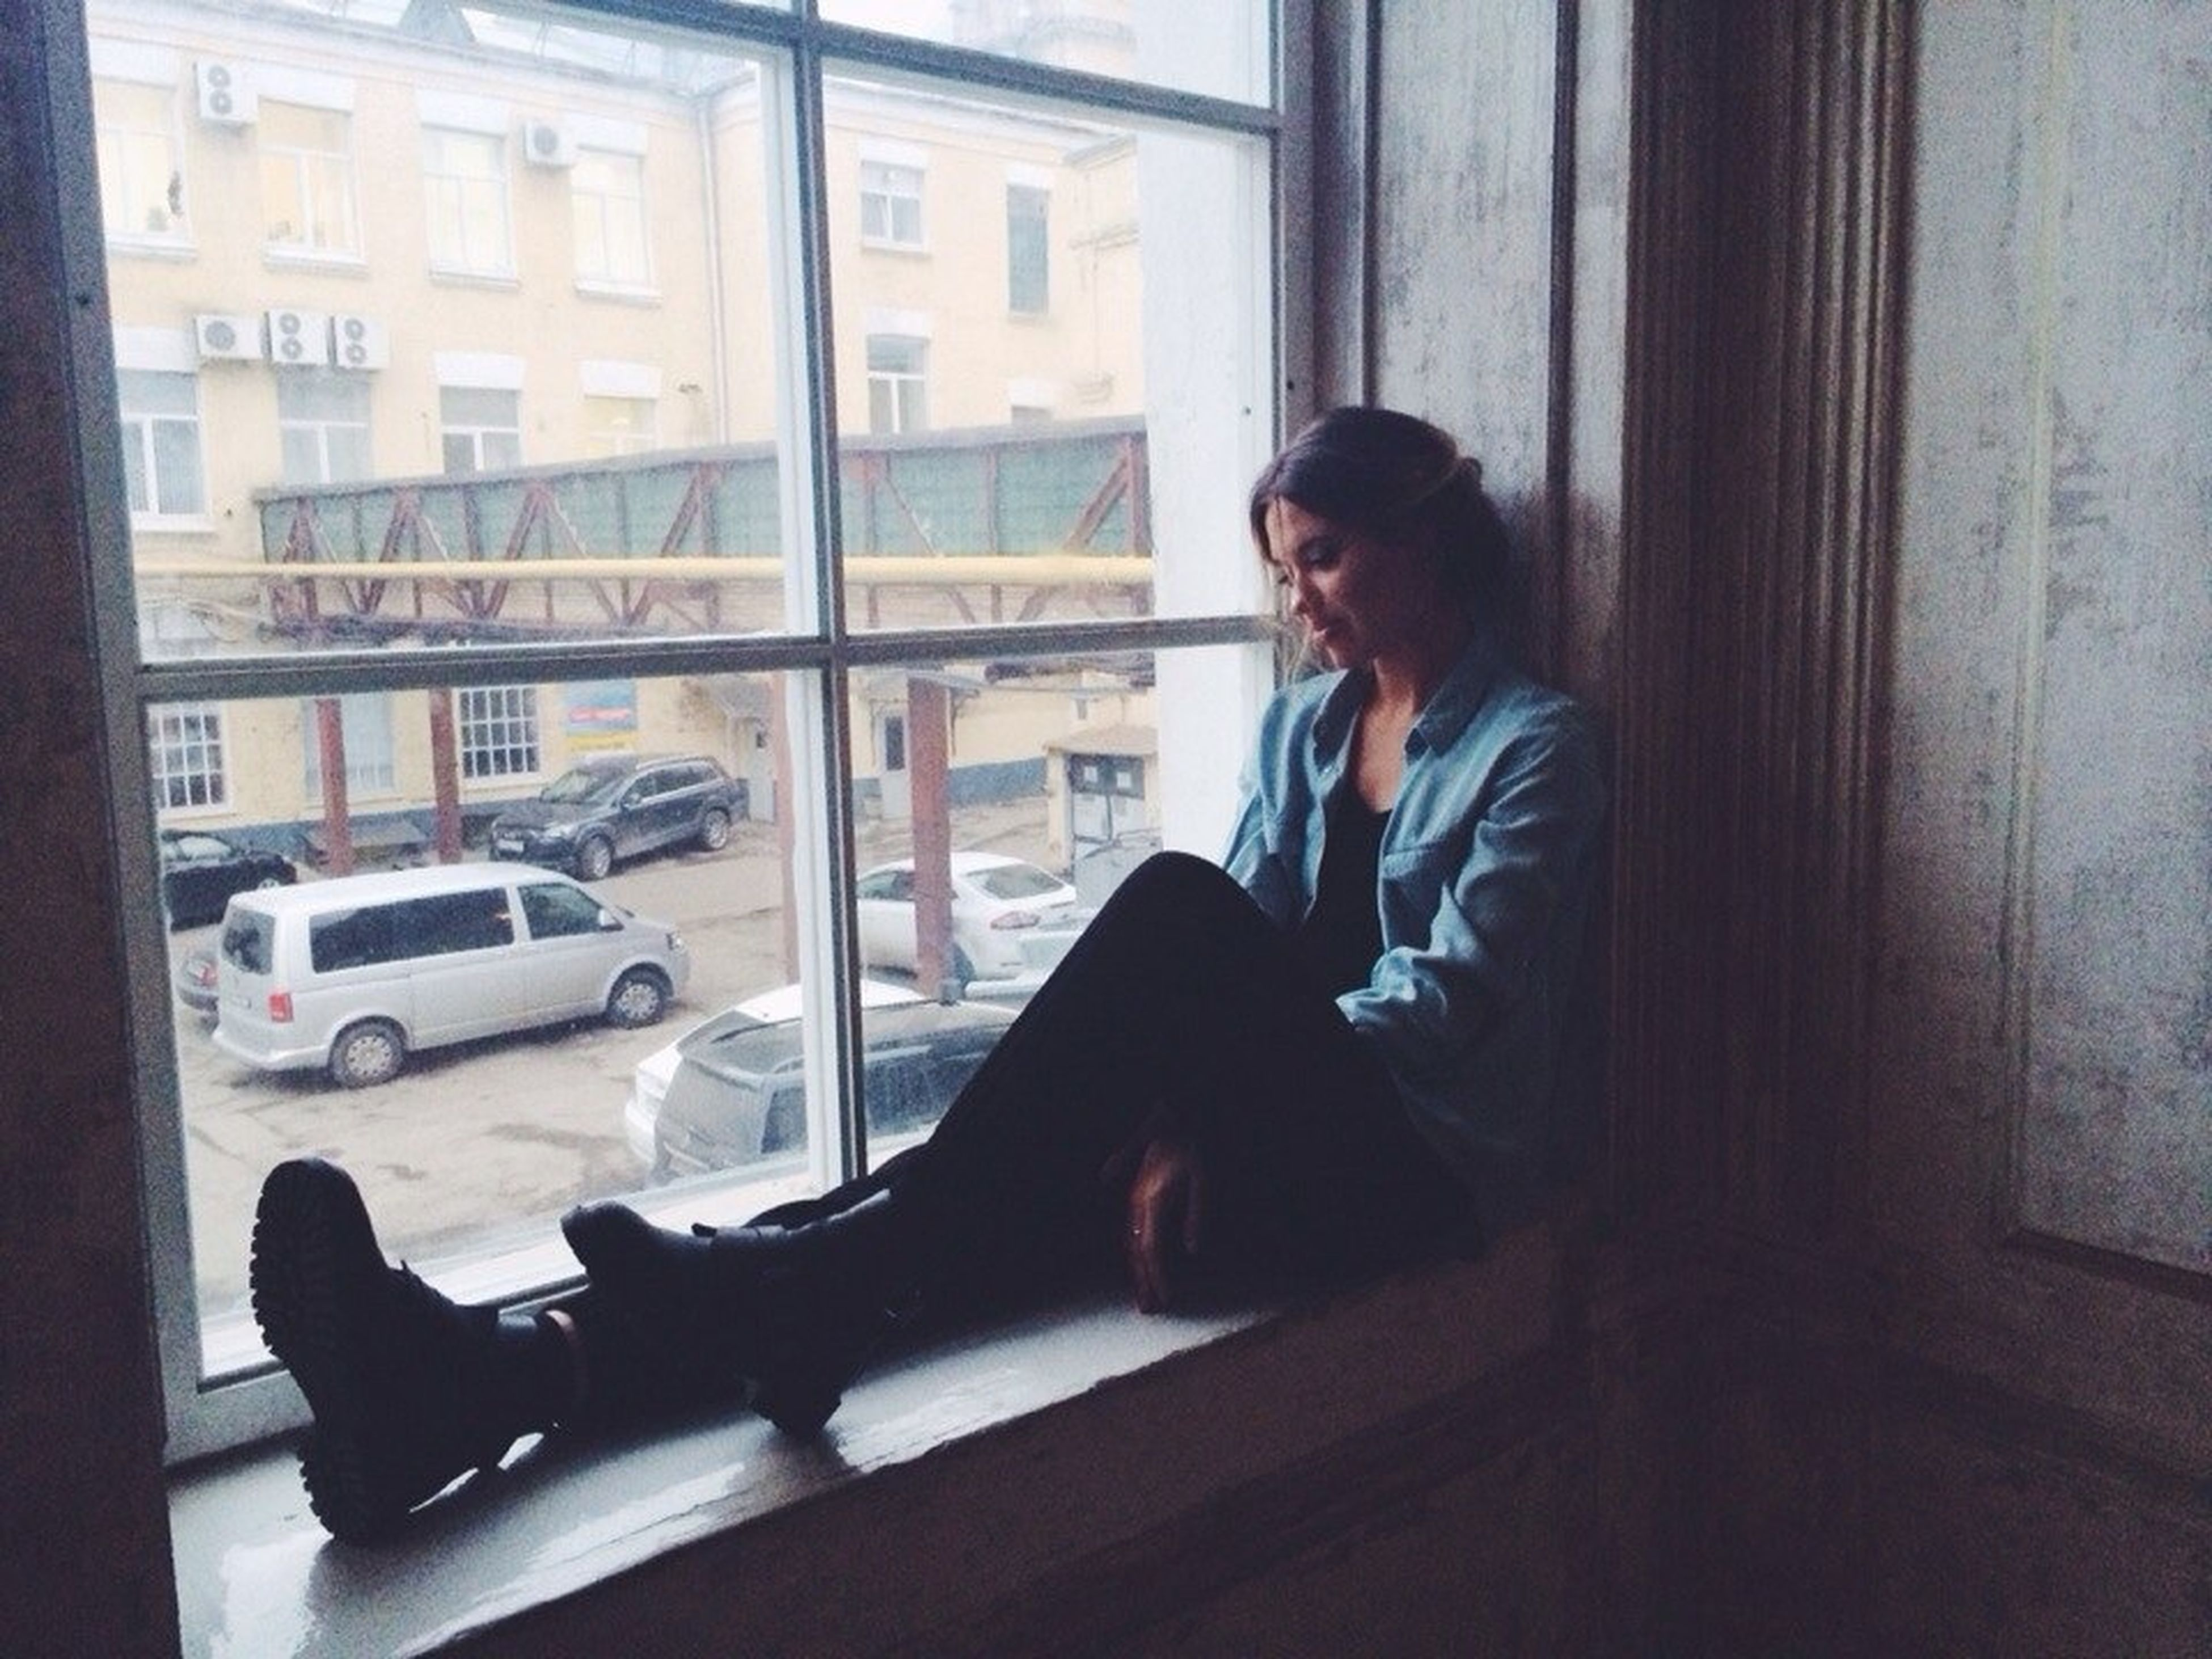 sitting, indoors, young adult, window, full length, lifestyles, side view, leisure activity, architecture, person, glass - material, built structure, three quarter length, casual clothing, young women, waist up, standing, looking away